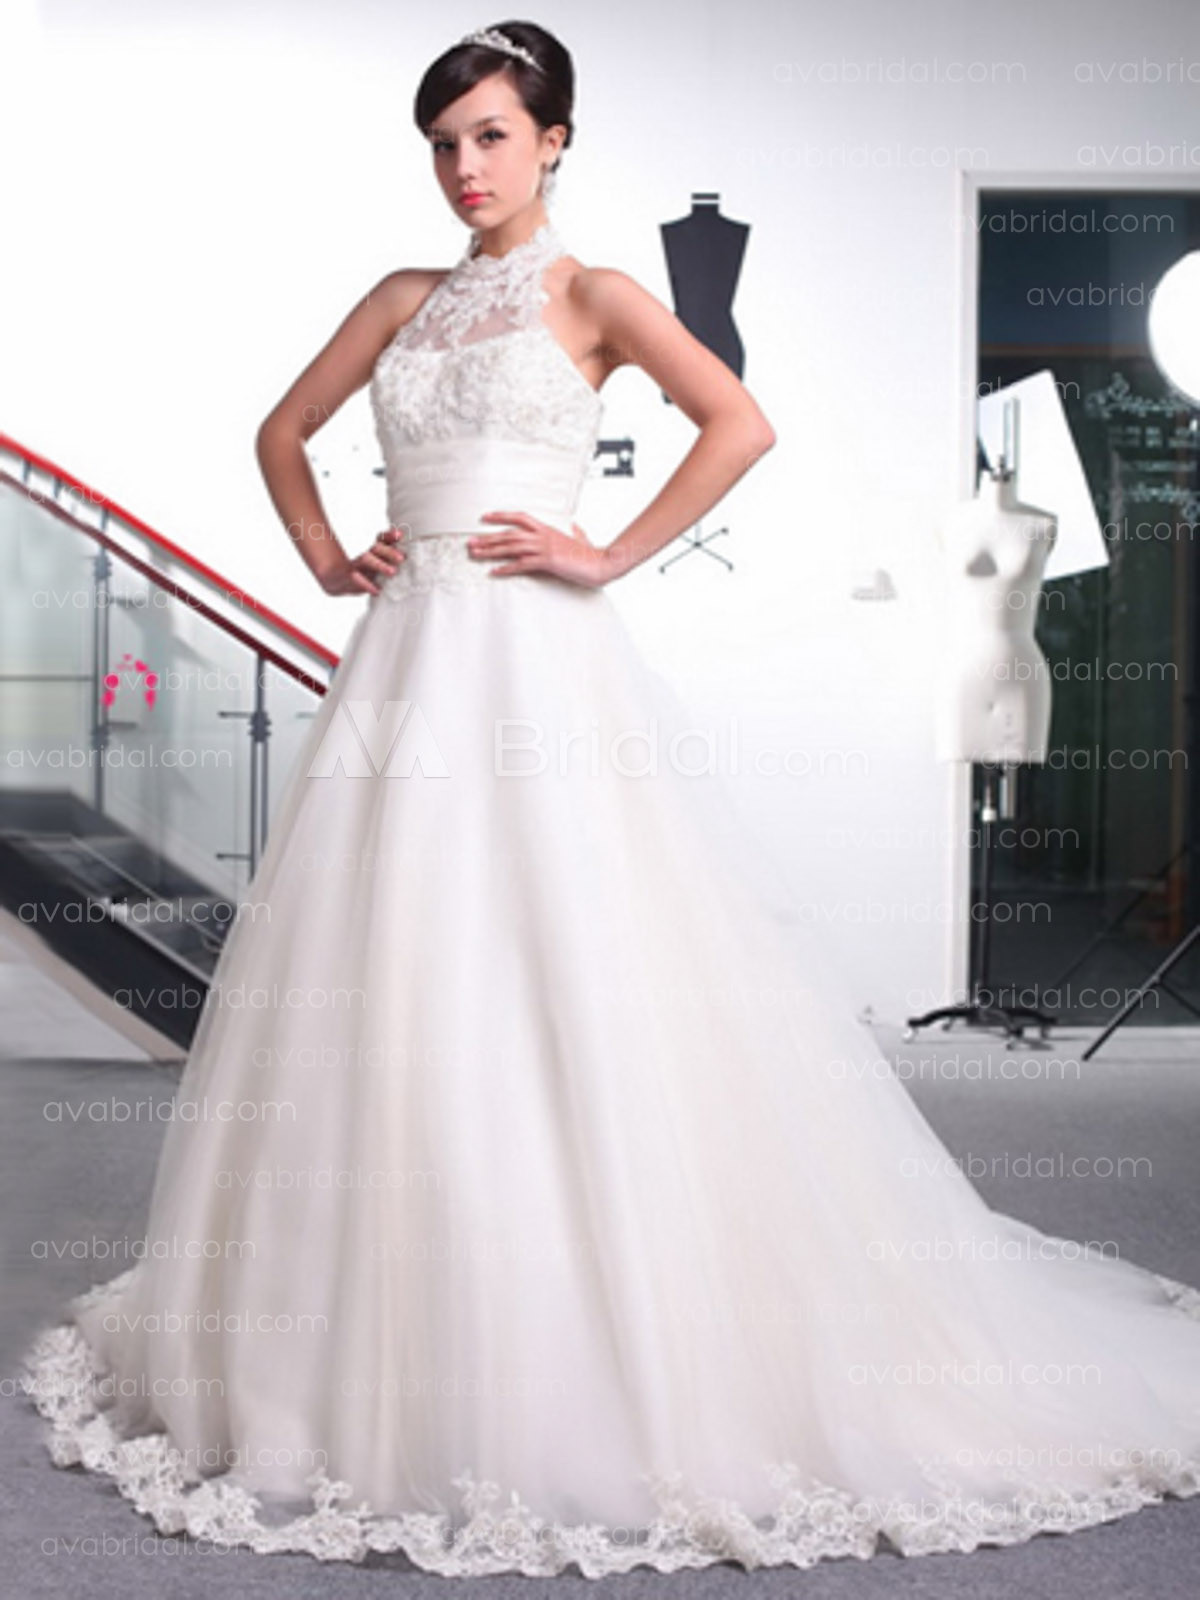 Vintage Inspired Wedding Gown - Angela - Front